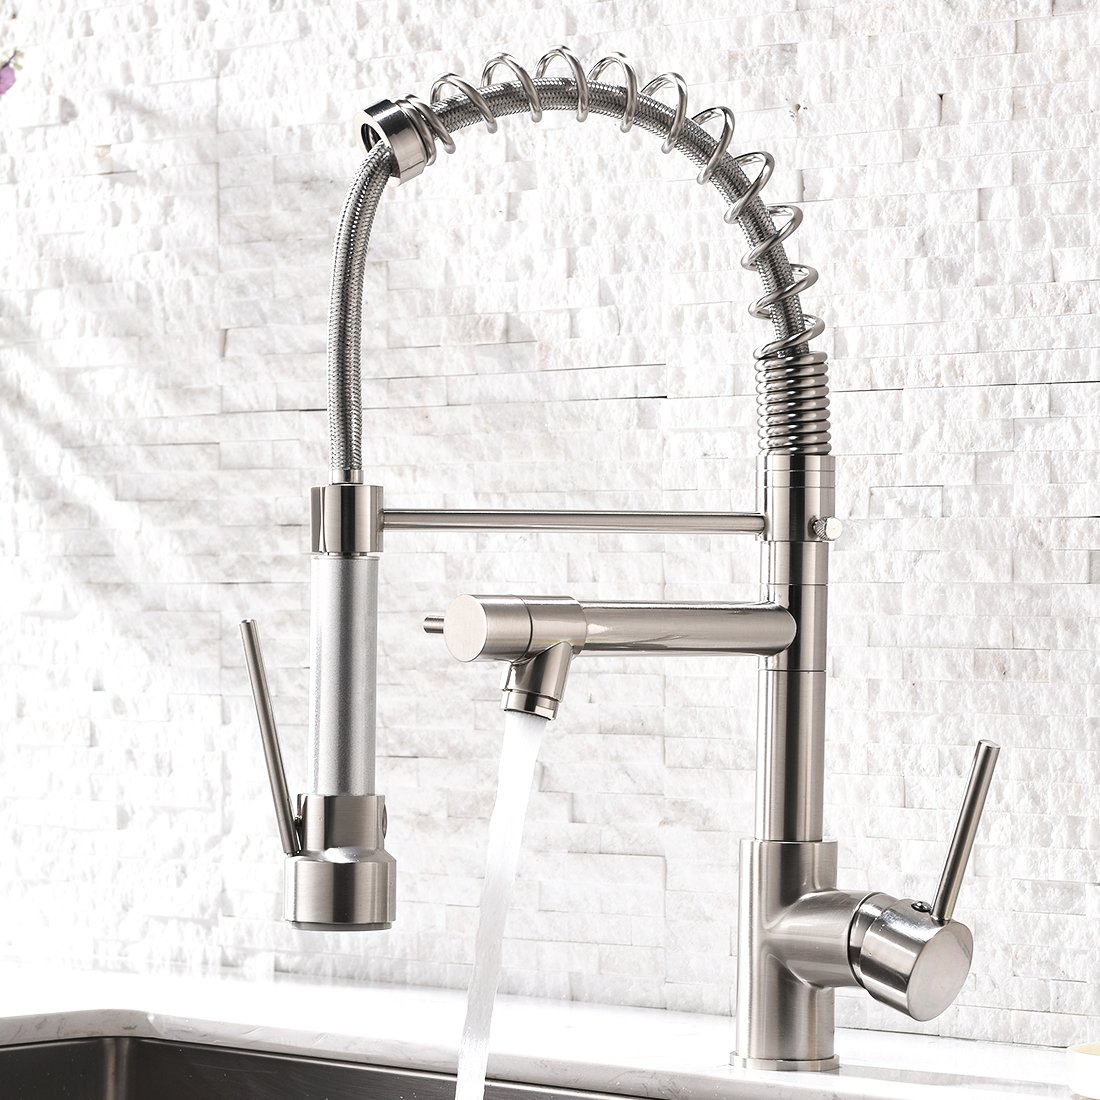 Aimadi Contemporary Kitchen Sink Faucet - Single Handle Stainless Steel Kitchen Faucets with Pull Down Sprayer,Brushed Nickel by AIMADI (Image #7)